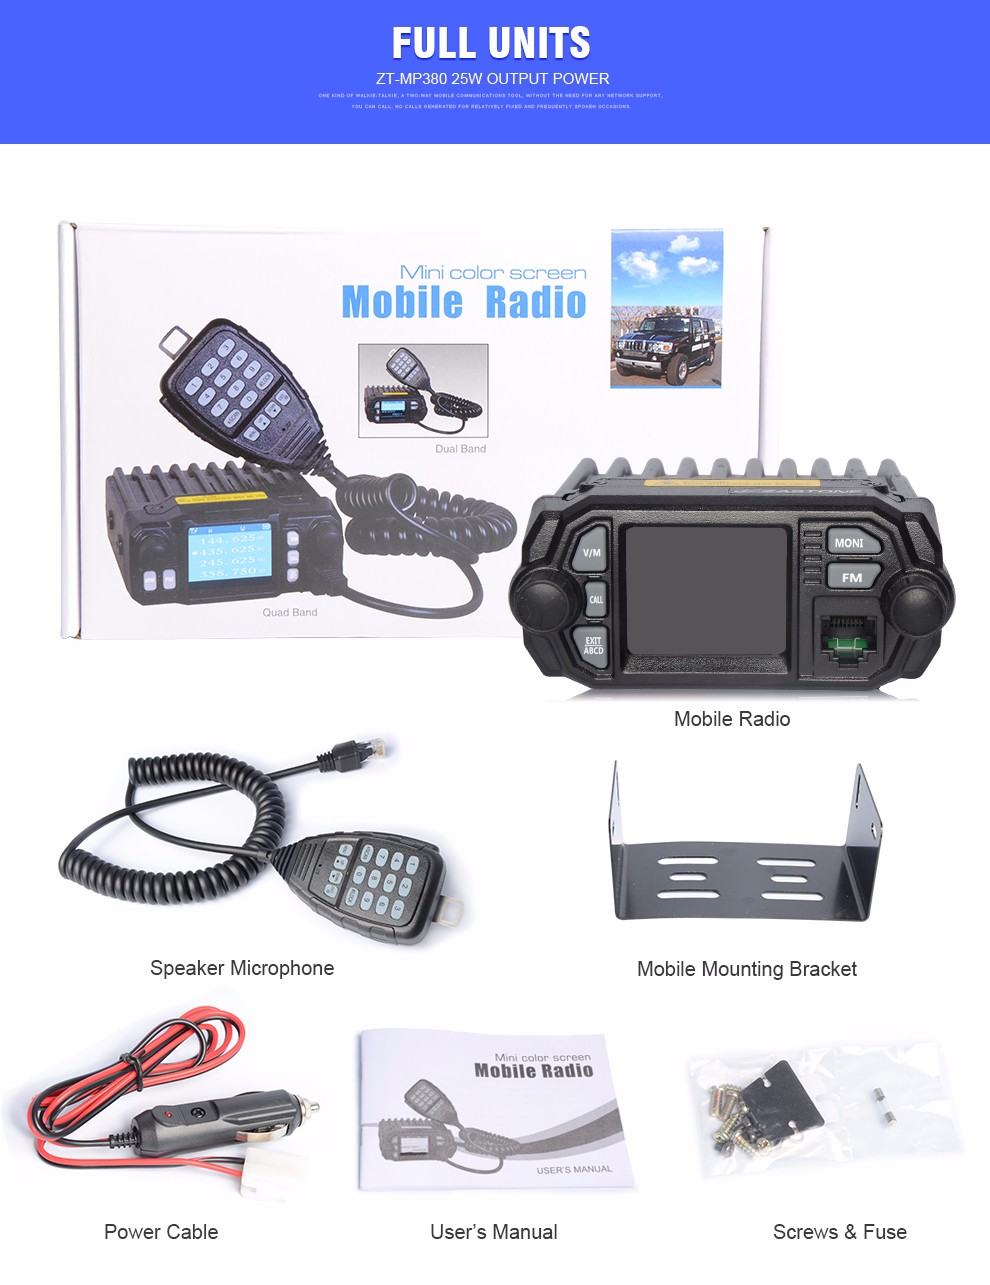 Zastone MP380 Dual band 25W car radio with speaker and monitor function talkie walkie